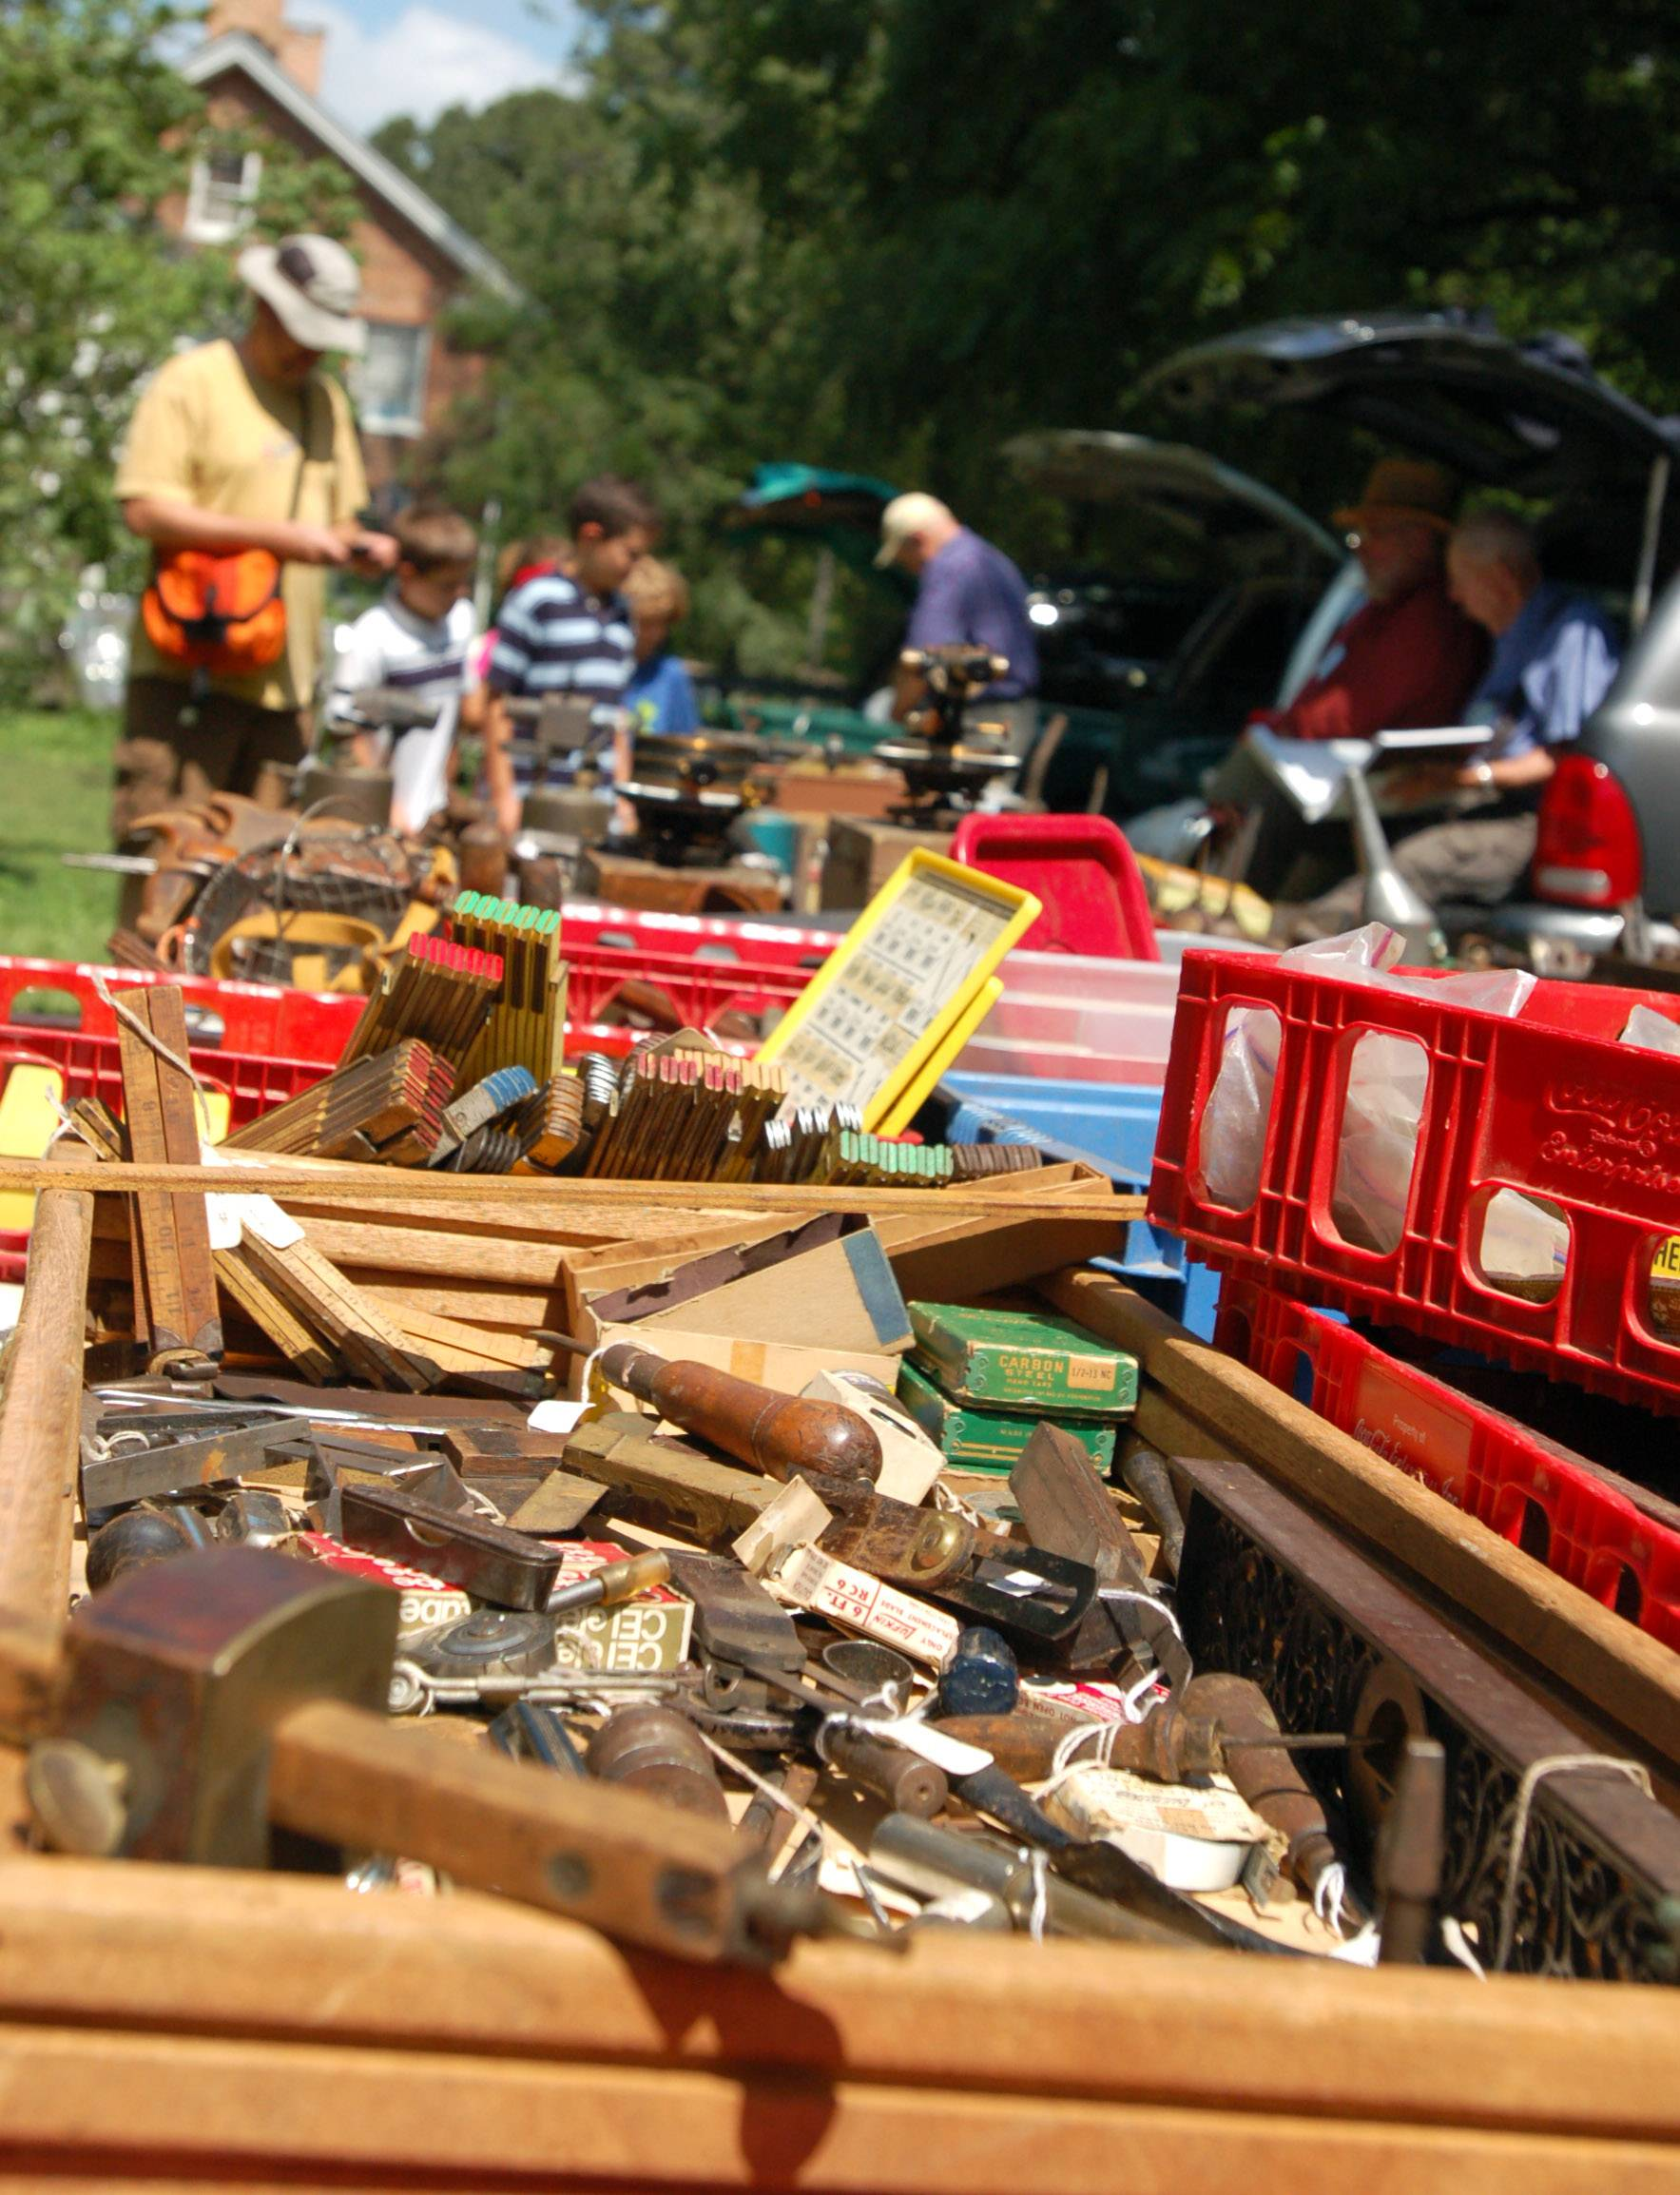 Thirty different collectors and vendors will have tools on display and for sale during the annual Antique Tool Show and Sale at Garfield Farm on Sunday, Aug. 3.